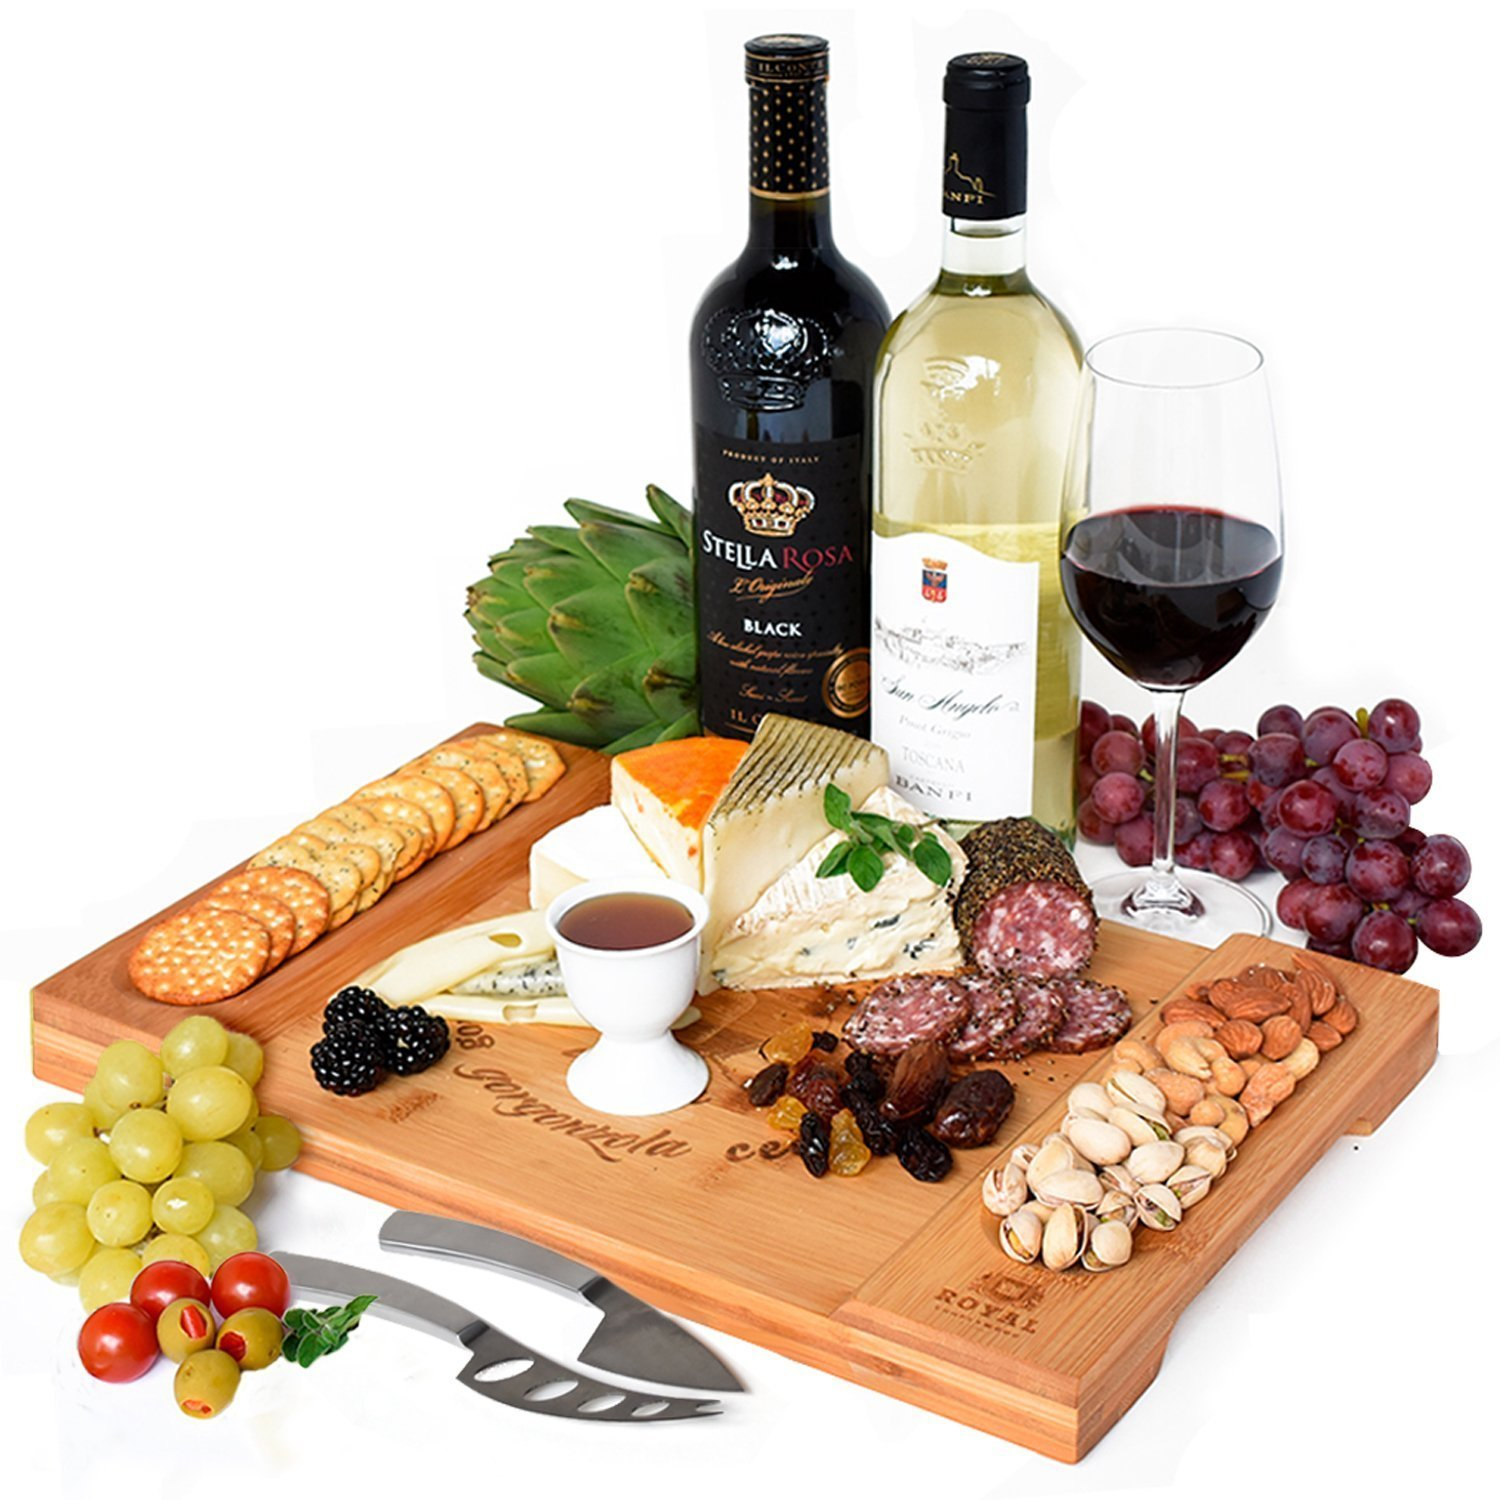 Unique Bamboo Cheese Board, Charcuterie Platter & Serving Tray for Wine, Crackers, Brie and Meat. Large & Thick Wooden Server - Fancy House Warming Gift & Perfect Choice for Gourmets (Bamboo) by Royal Craft Wood (Image #1)